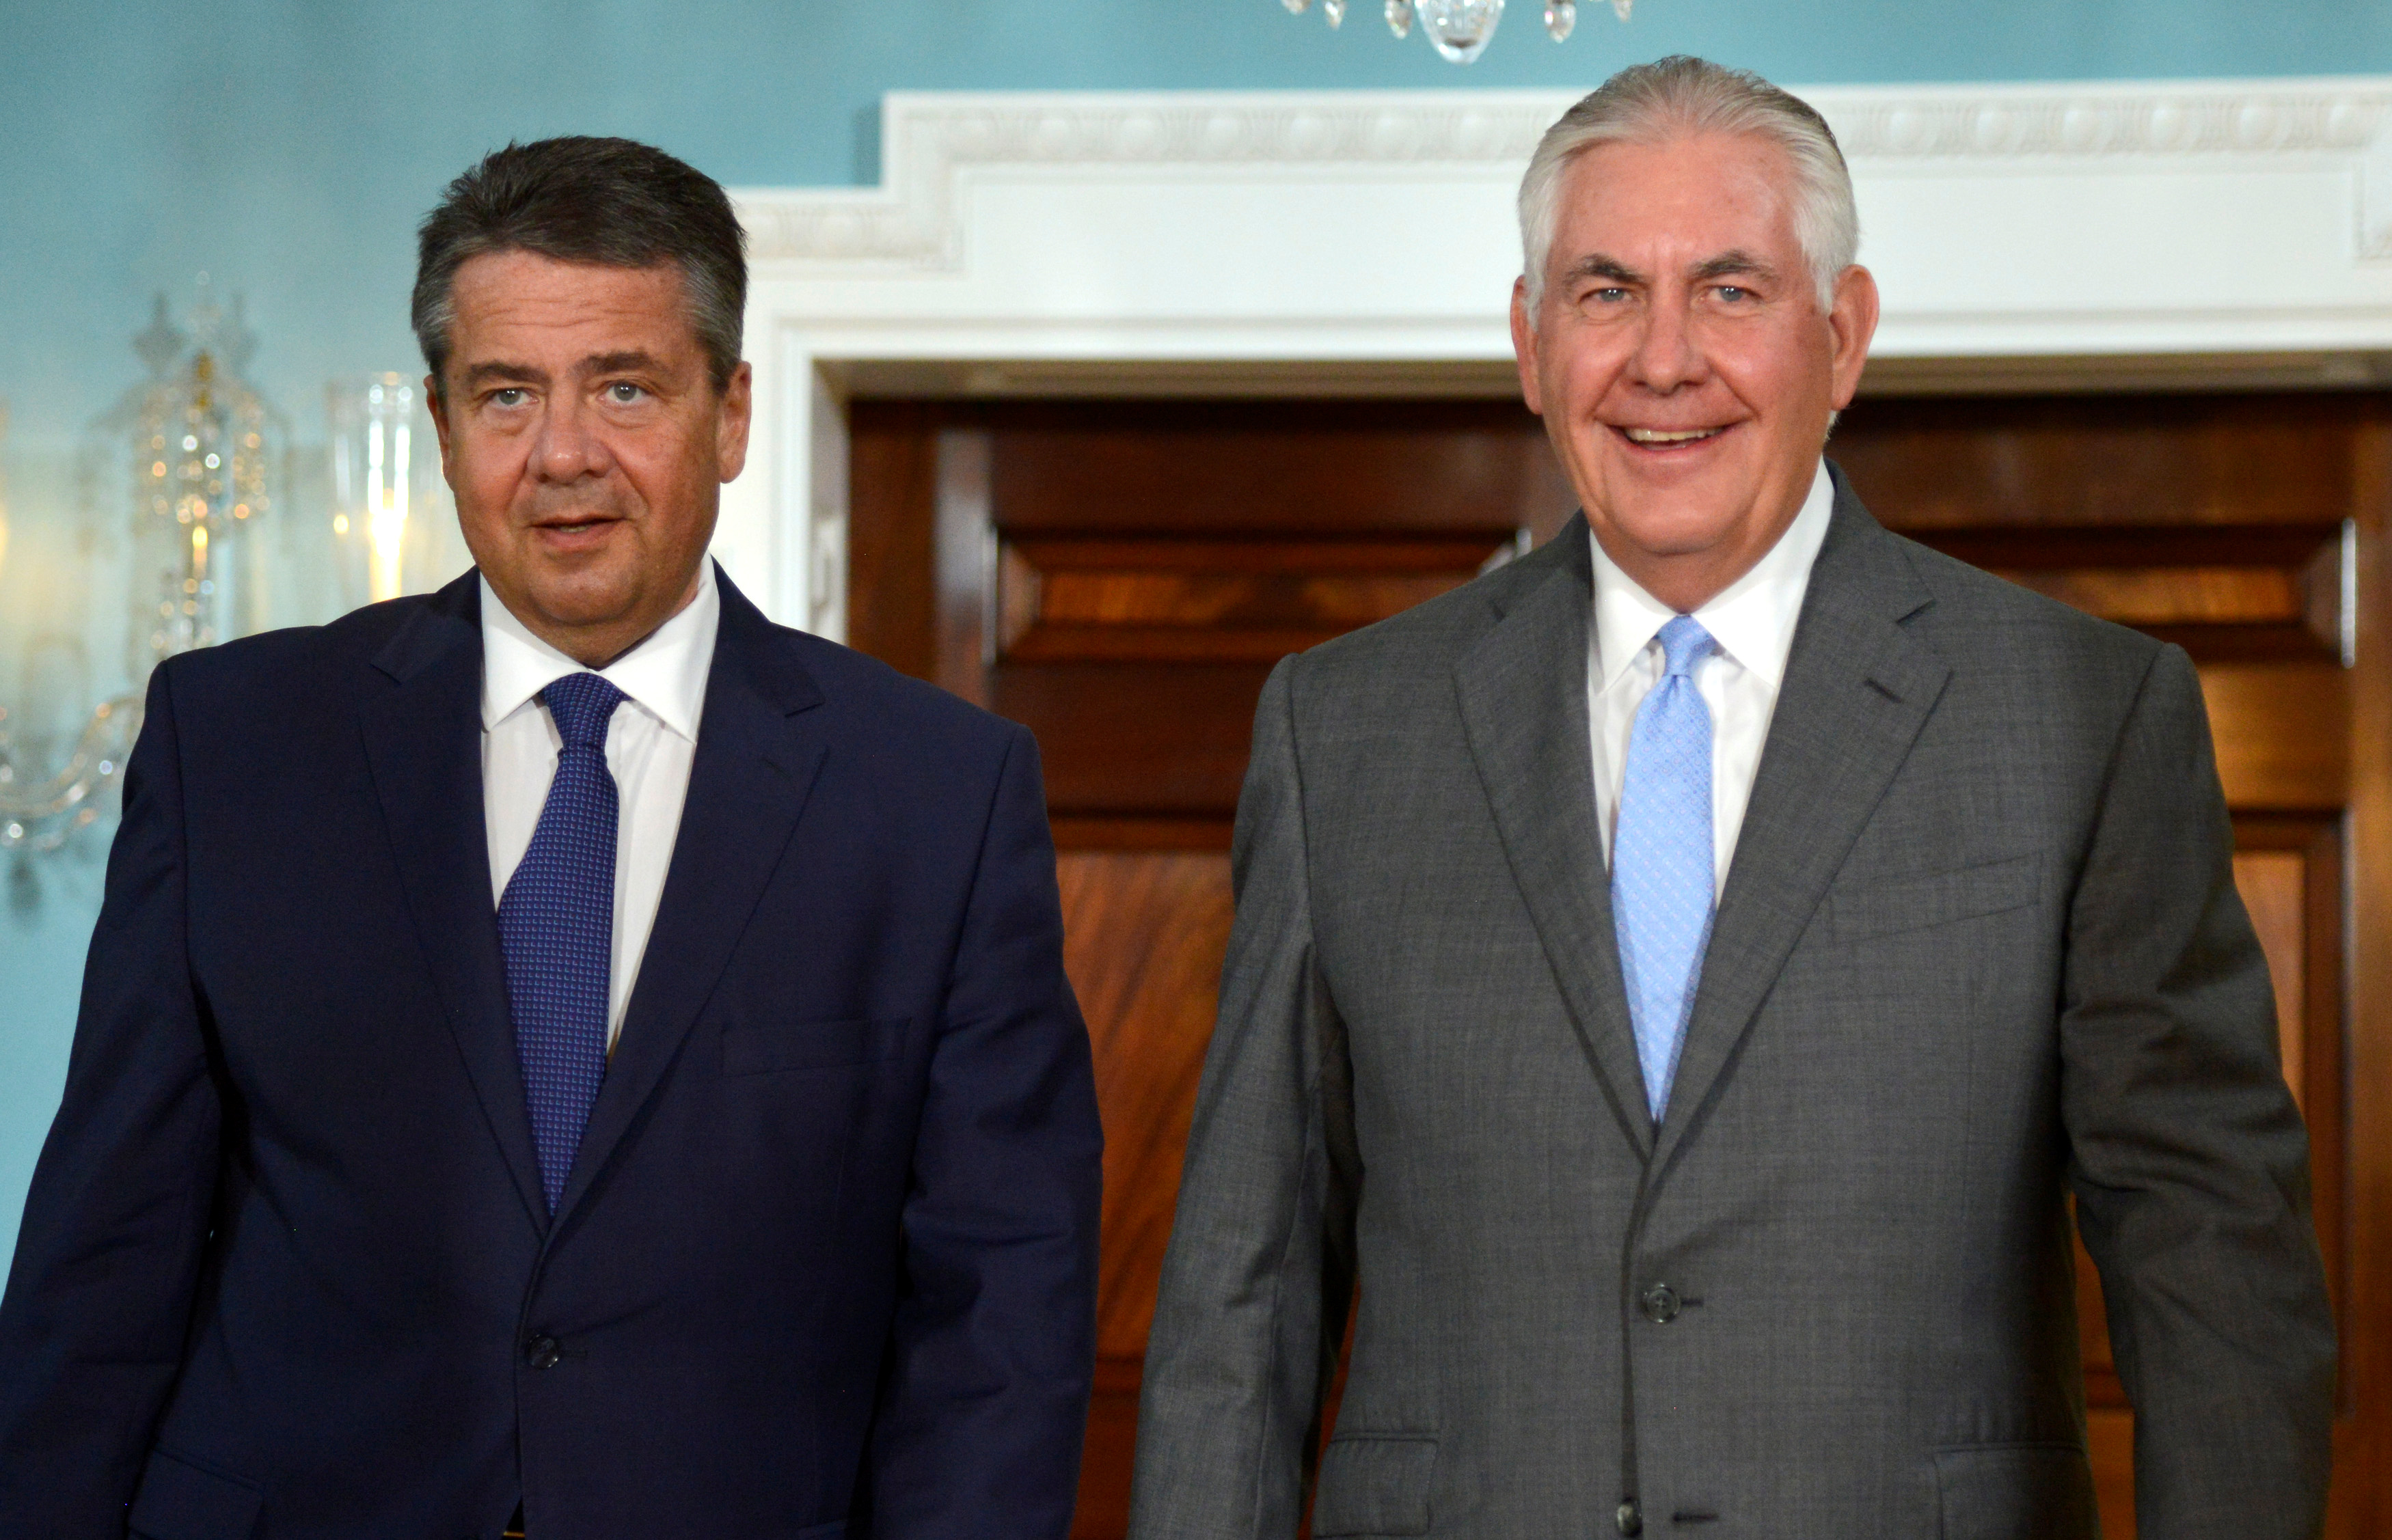 U.S. Secretary of State Rex Tillerson (R) and German Foreign Minister Sigmar Gabriel walk out to meet the press where Tillerson made a statement about the flooding in Houston, Texas, but declined questions, prior to a bilateral meeting, at the State Department, in Washington, U.S., August 29, 2017. REUTERS/Mike Theiler